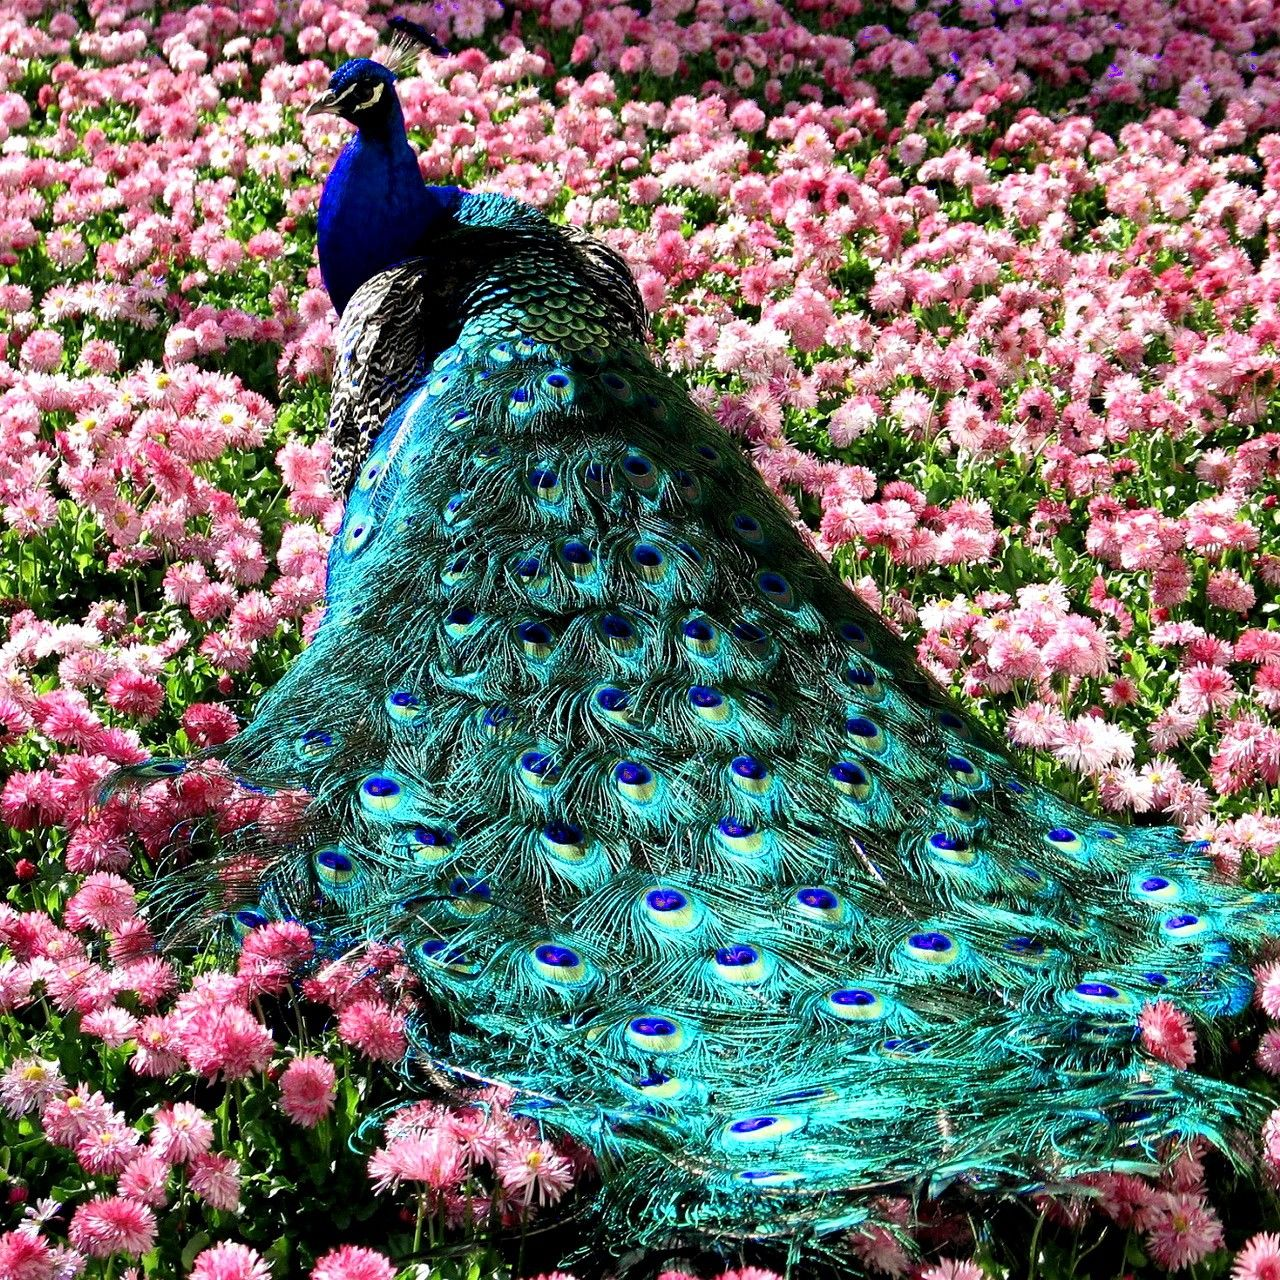 beautiful, this incredible peacock inspires me beyond words.